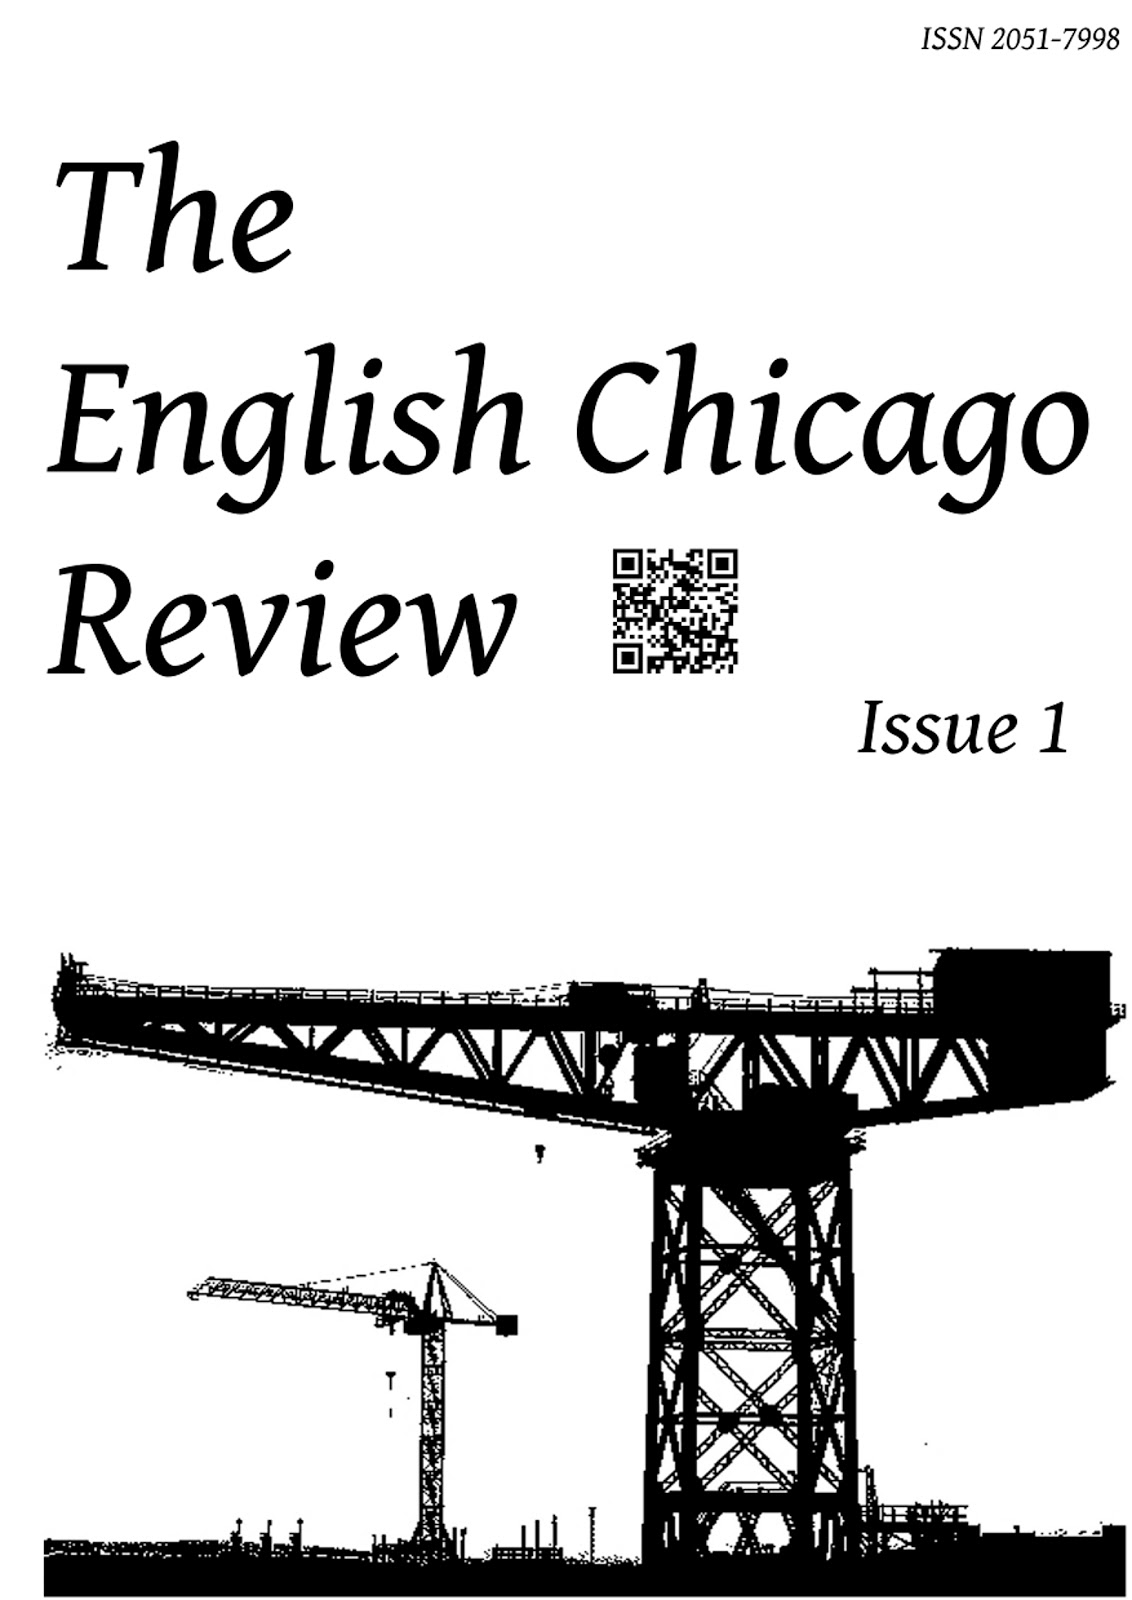 Cover Image: The English Chicago Review, Issue 1